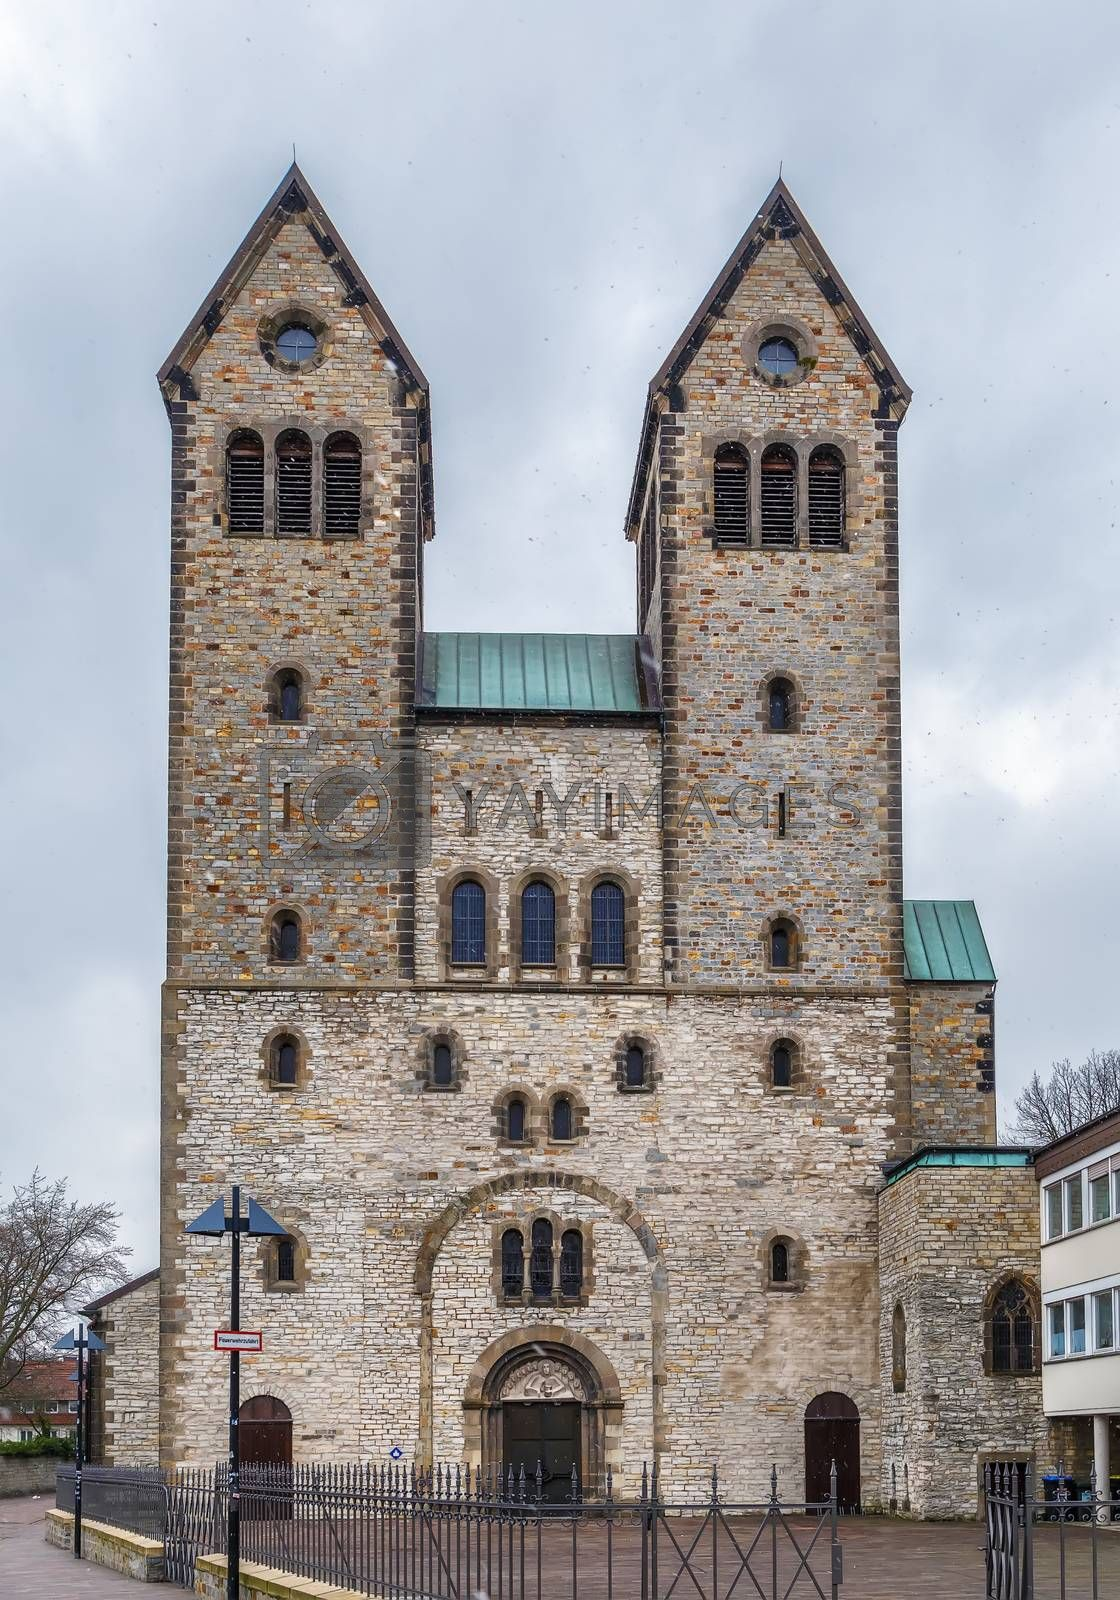 Royalty free image of The Abdinghof Church, Paderborn, Germany by borisb17